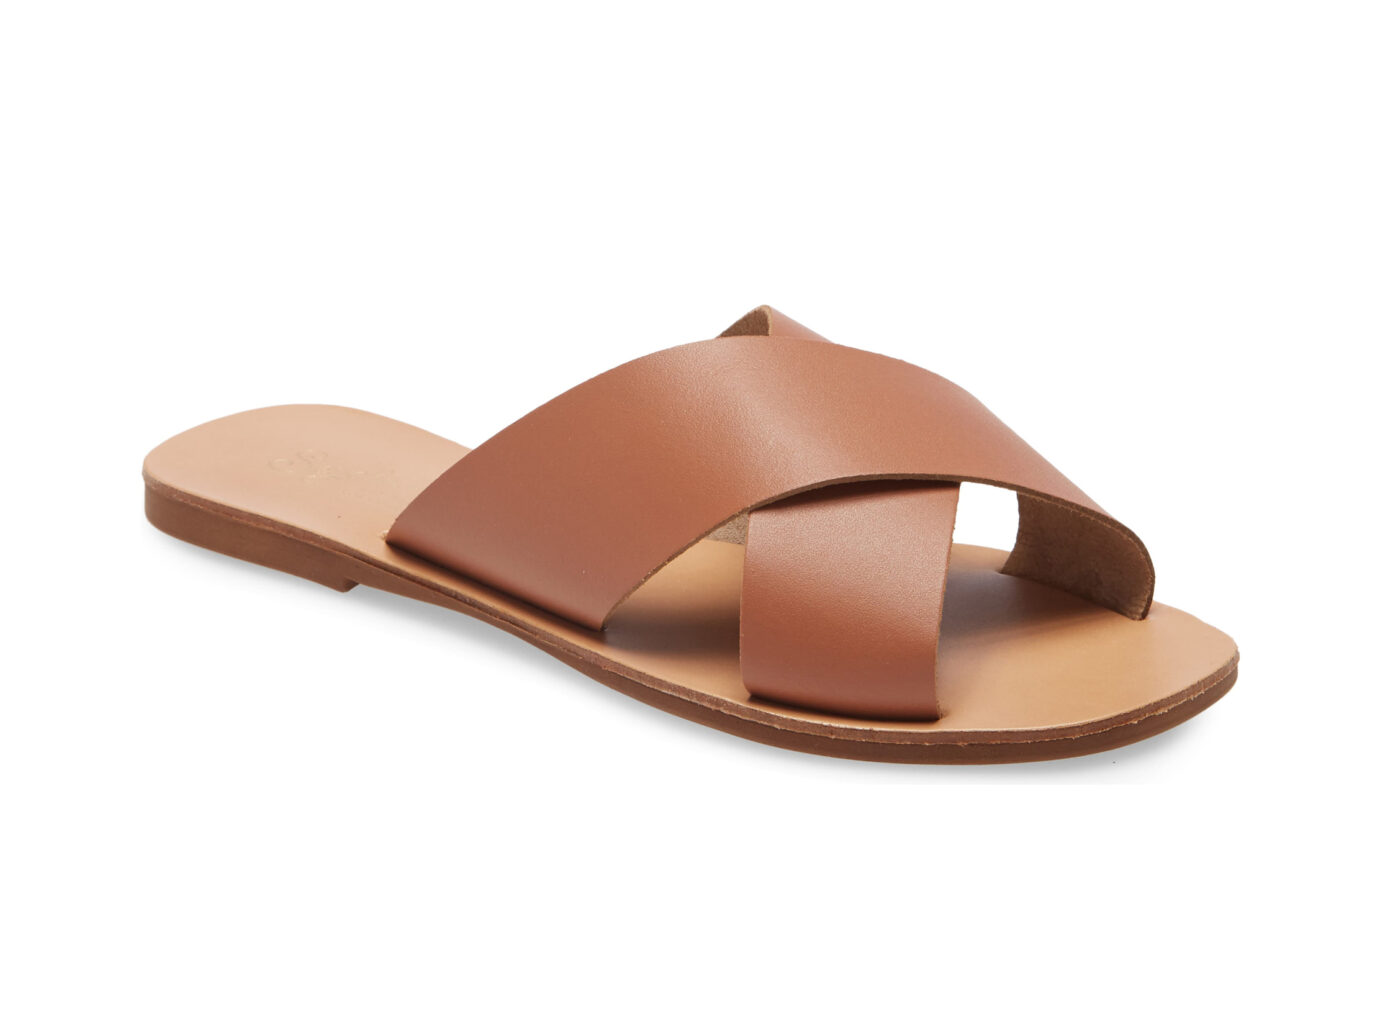 Seychelles Total Relaxation Slide Sandals in Cognac Leather